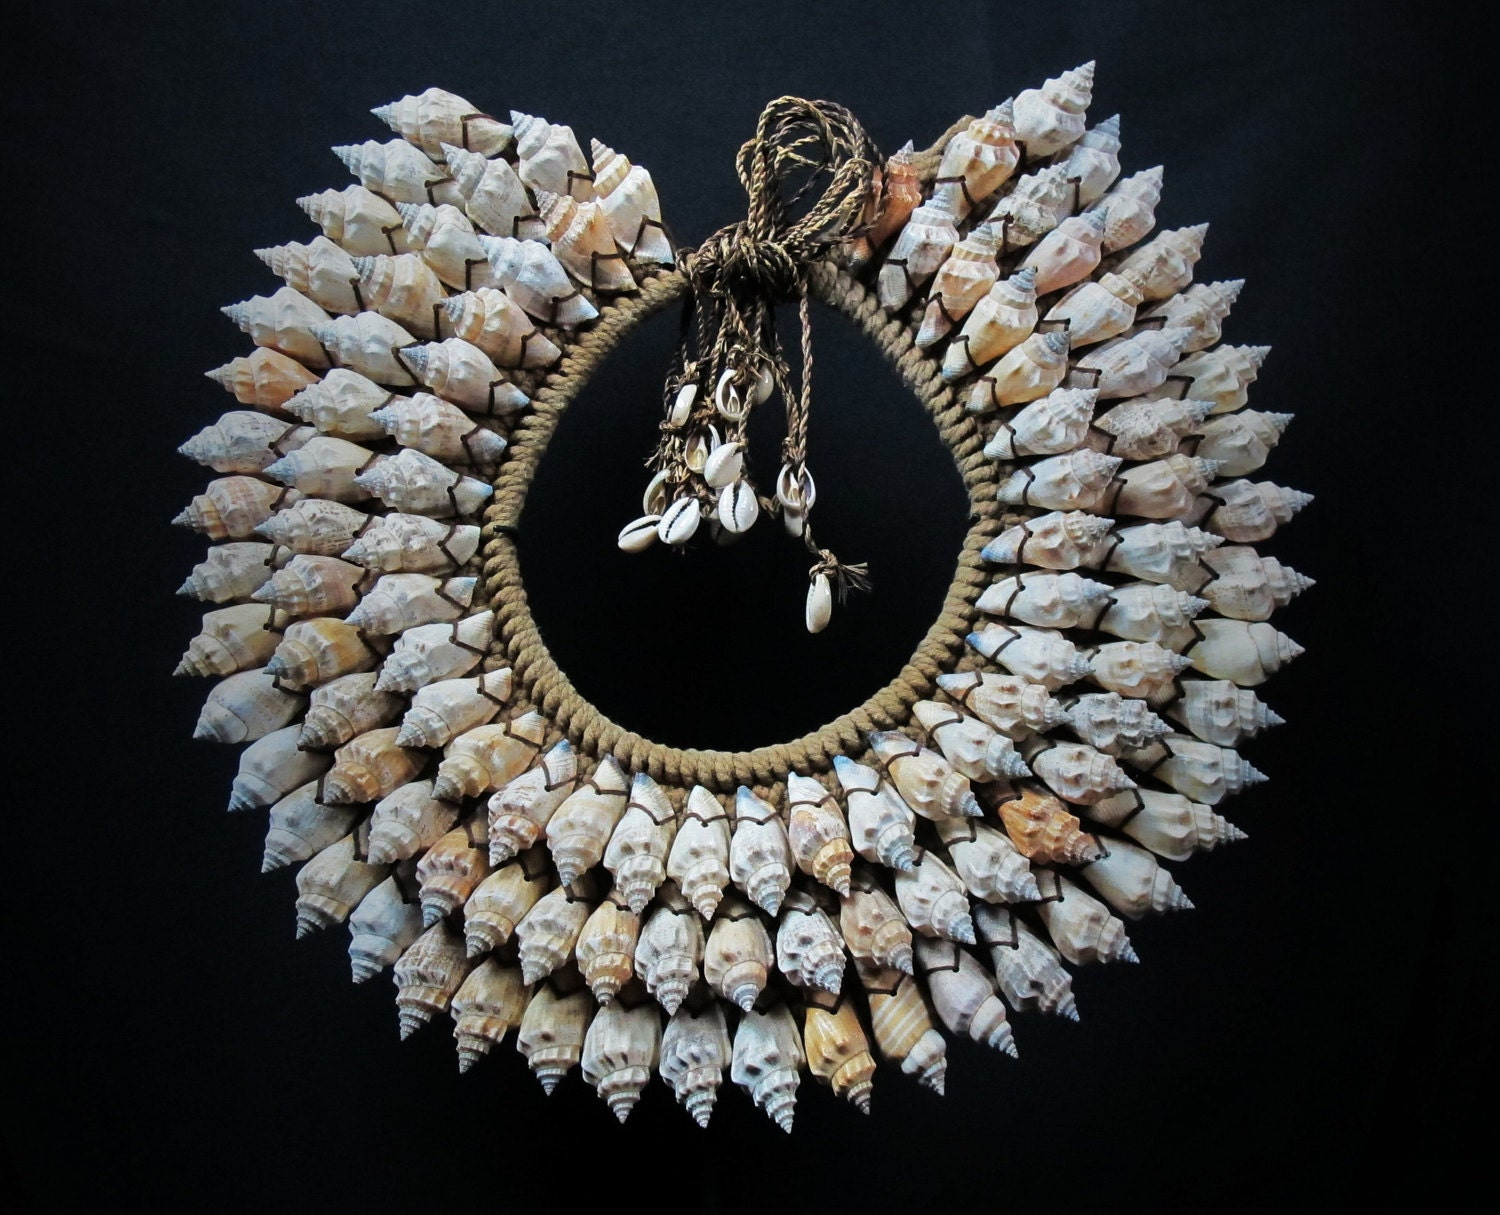 Papua Shell Necklace Ethnic Jewelry Tribal New Guinea Currency